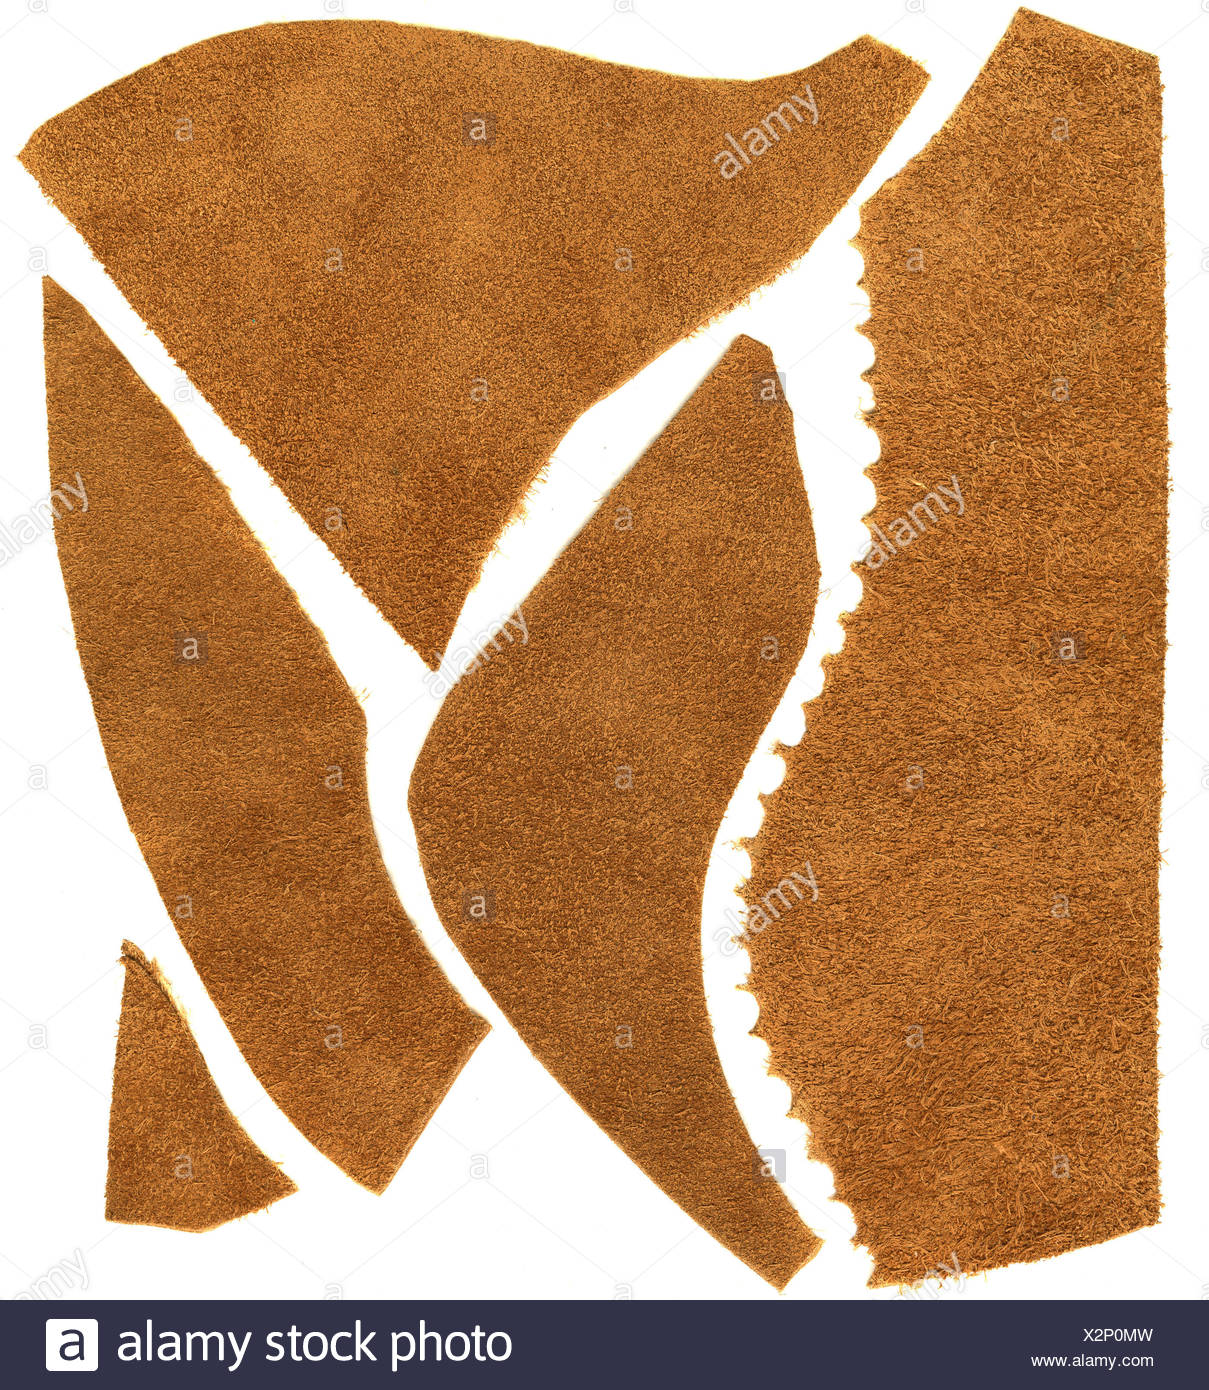 brown brownish brunette rough soft leather scrap unfinished brown brownish - Stock Image